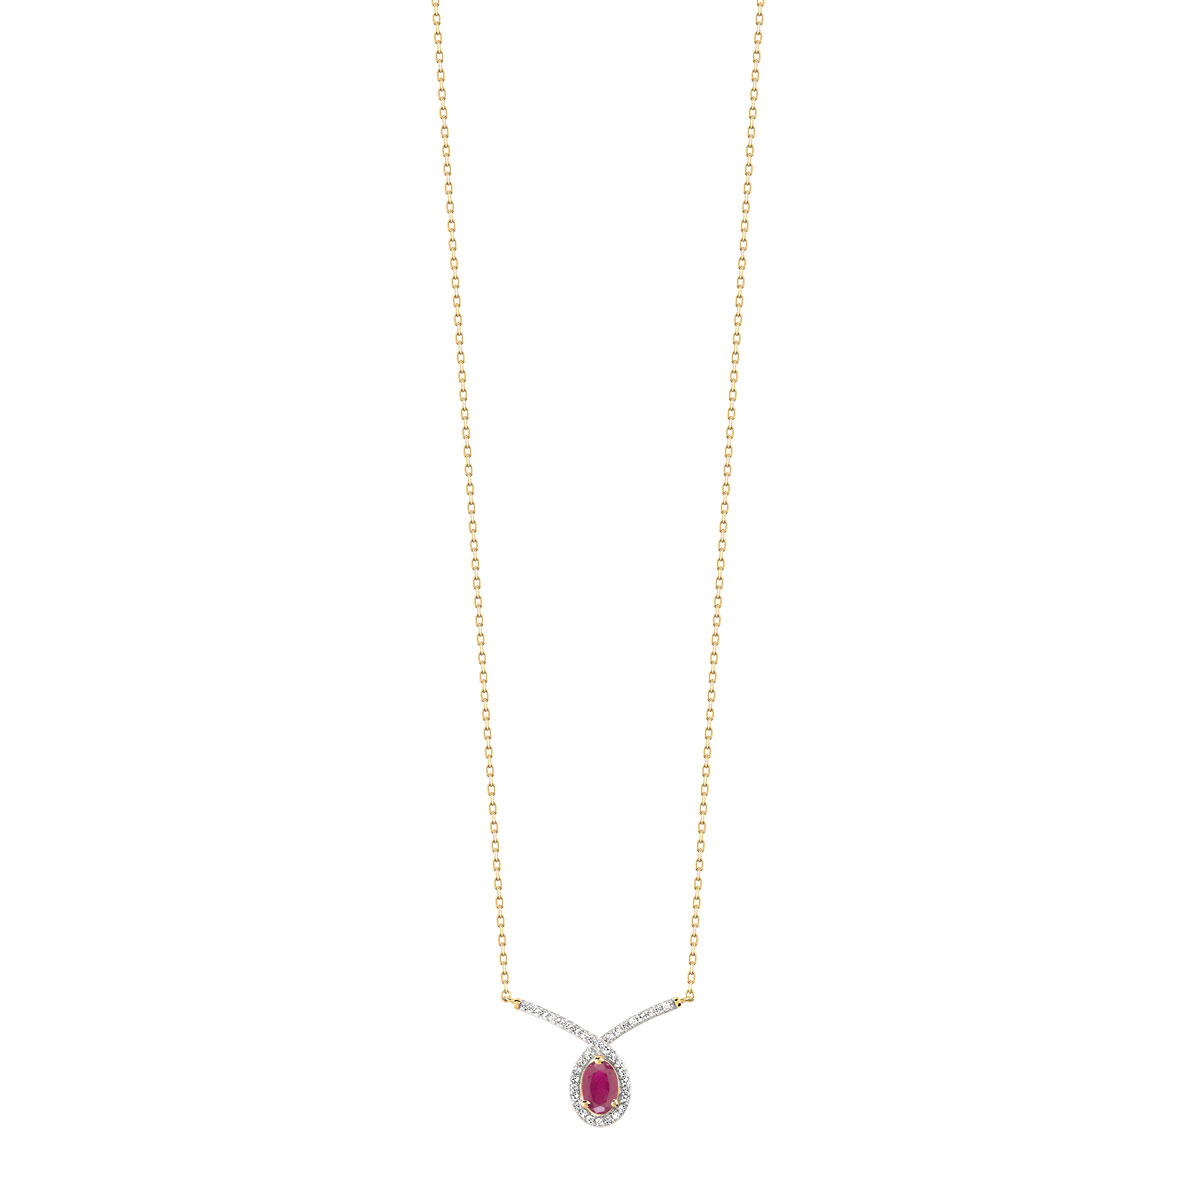 Collier or 375 2 tons rubis et diamant - vue V1